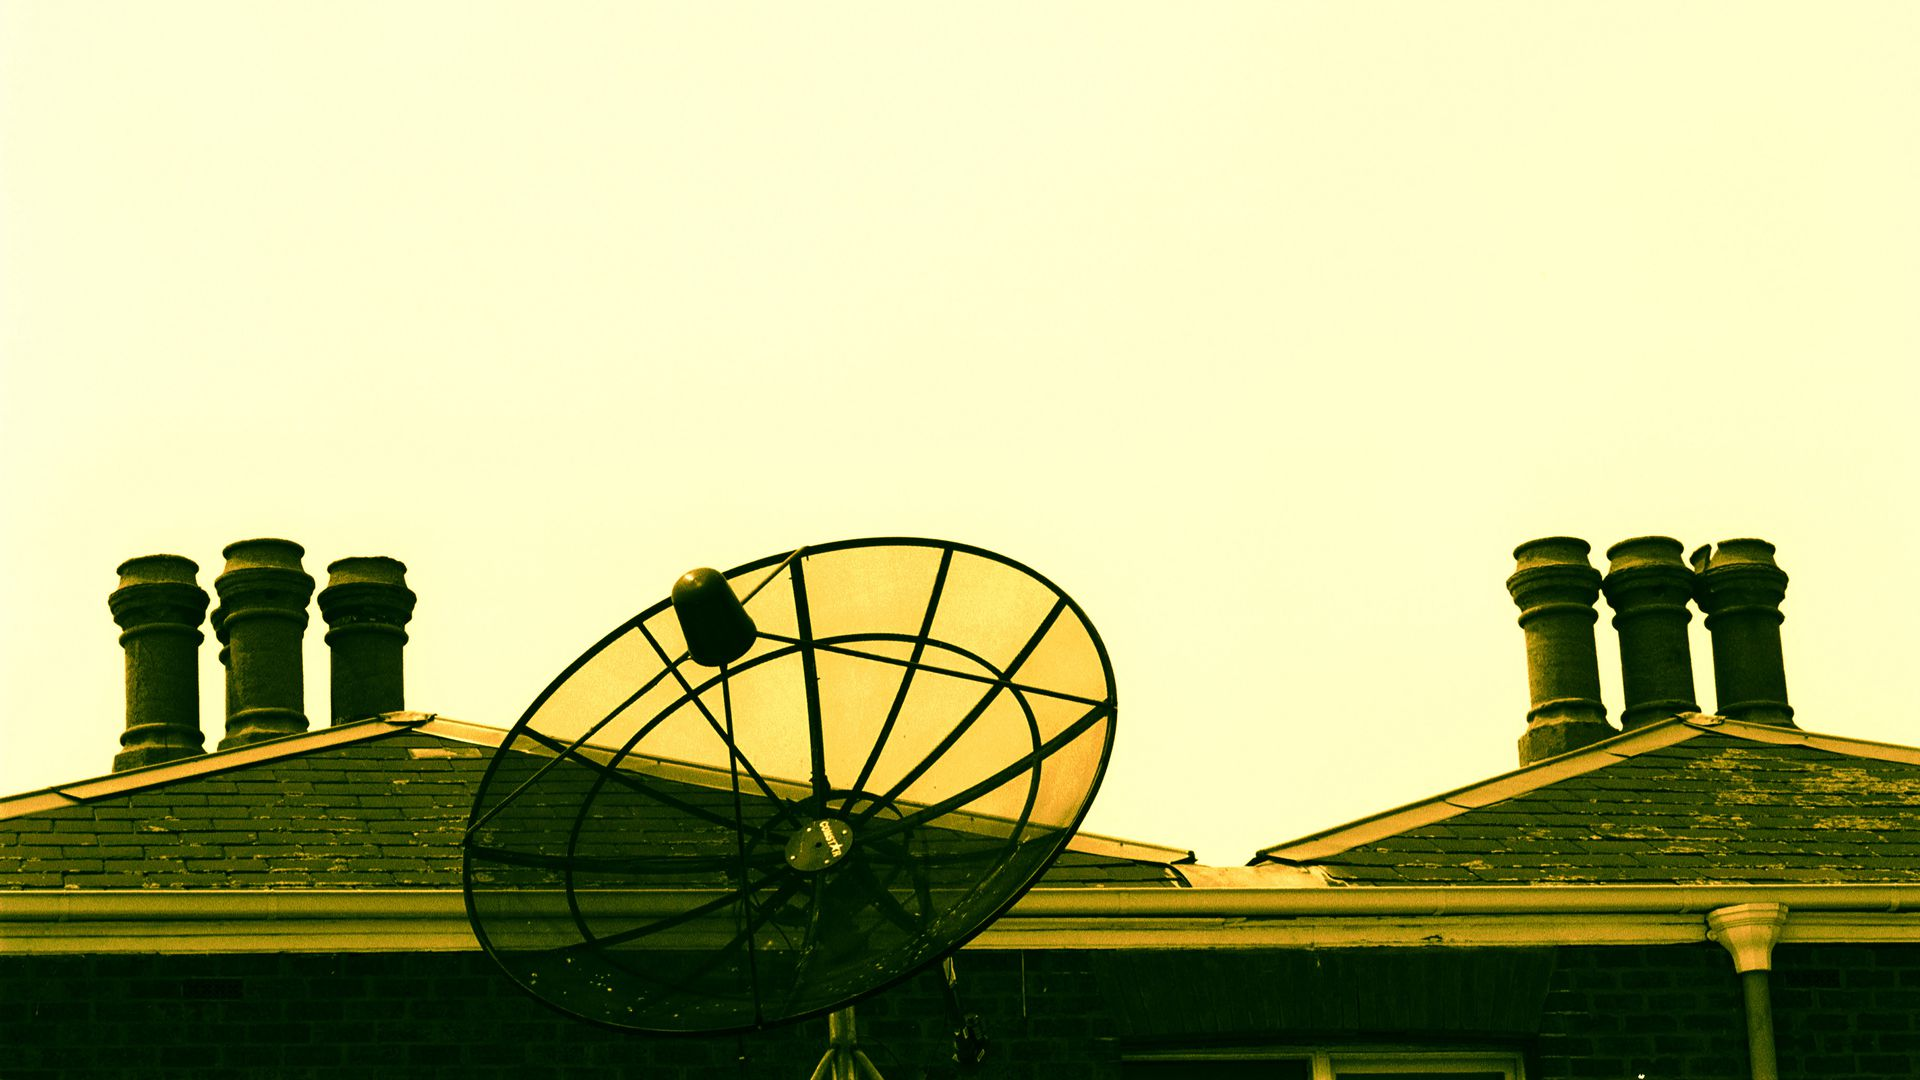 satellite dish on a rooftop